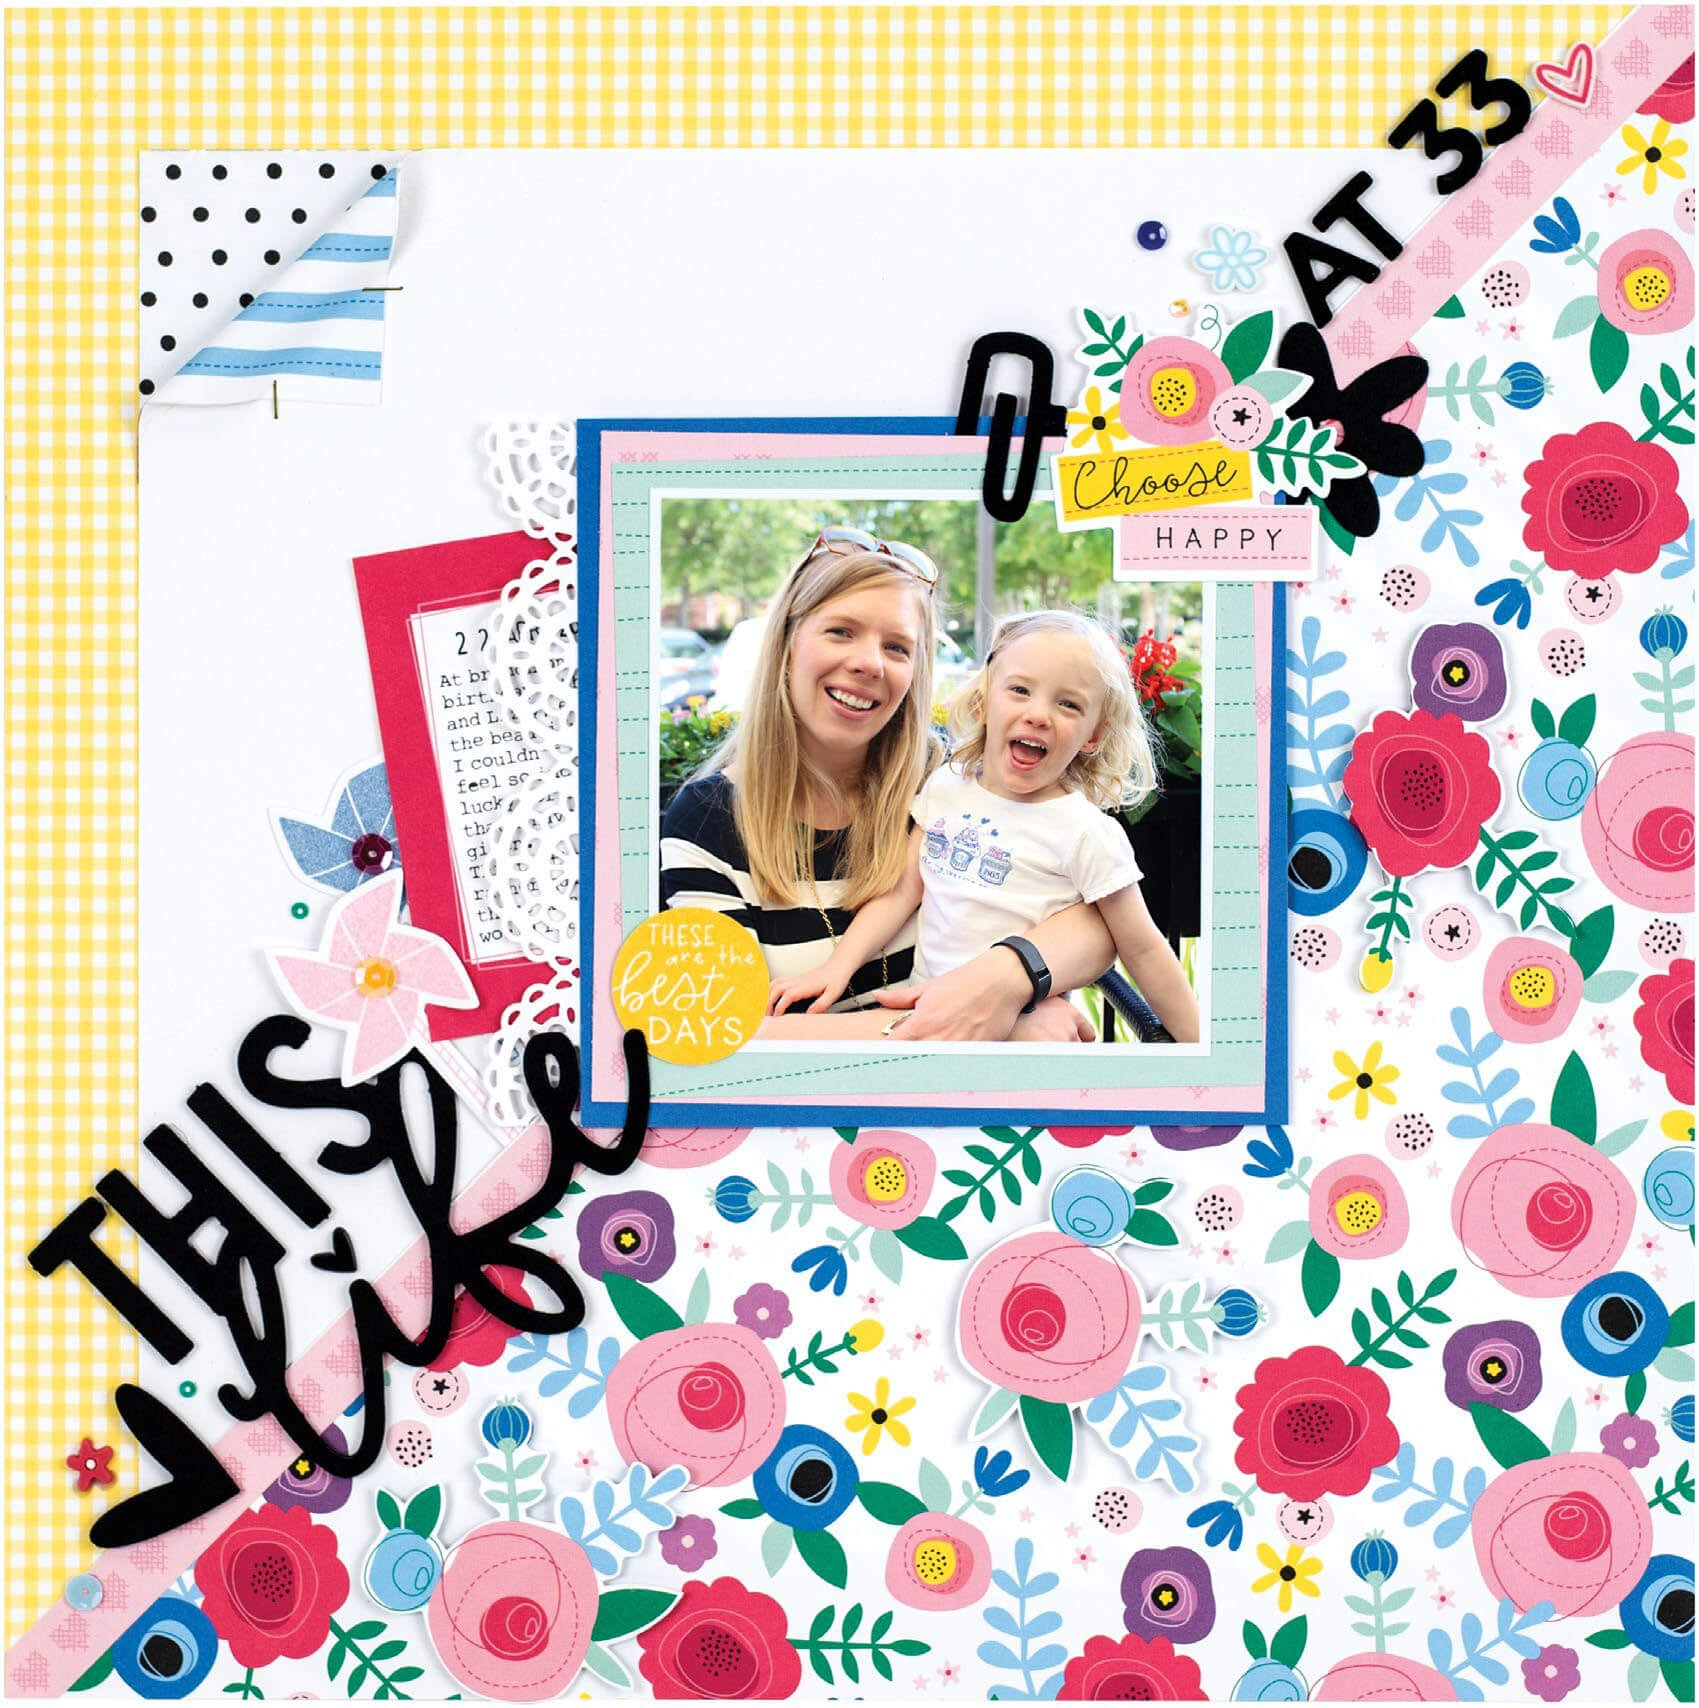 Scrapbook & Cards Today - Summer 2019 - This Life at 33 layout by Meghann Andrew